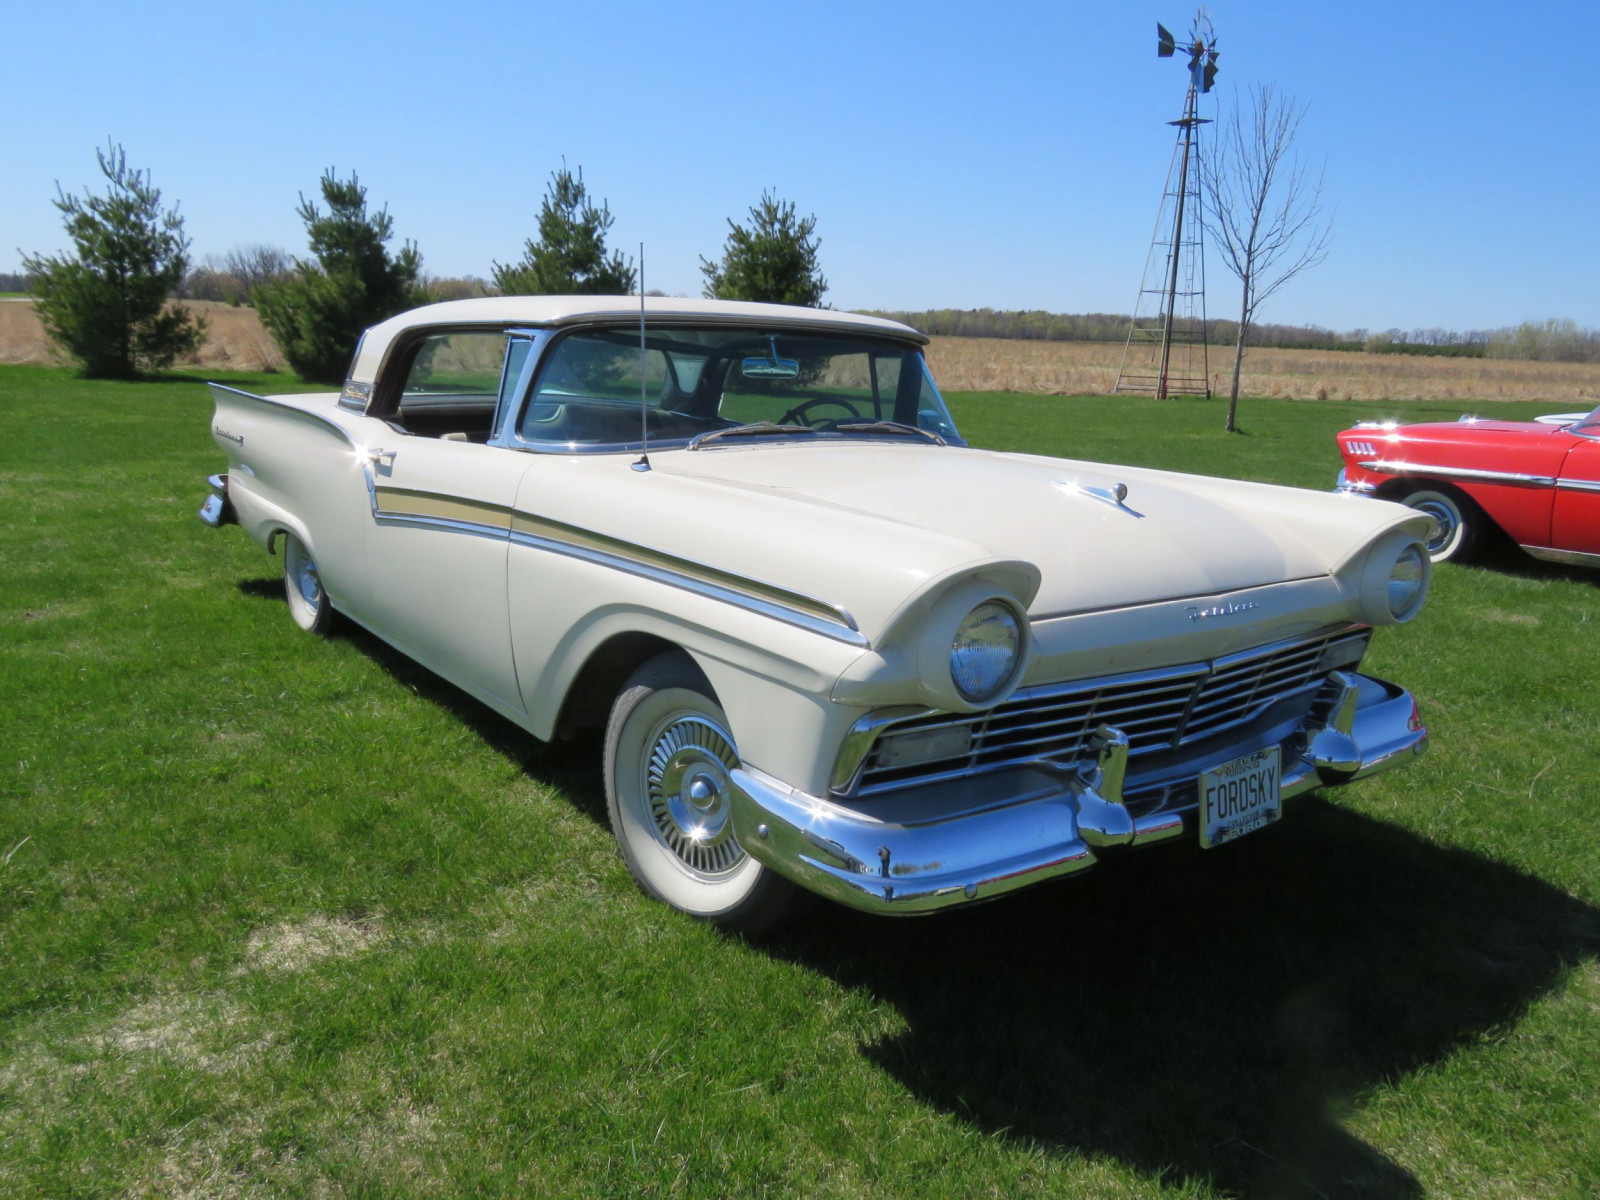 1957 Ford Fairlane 500 Skyliner Retractable Hardtop - Image 3